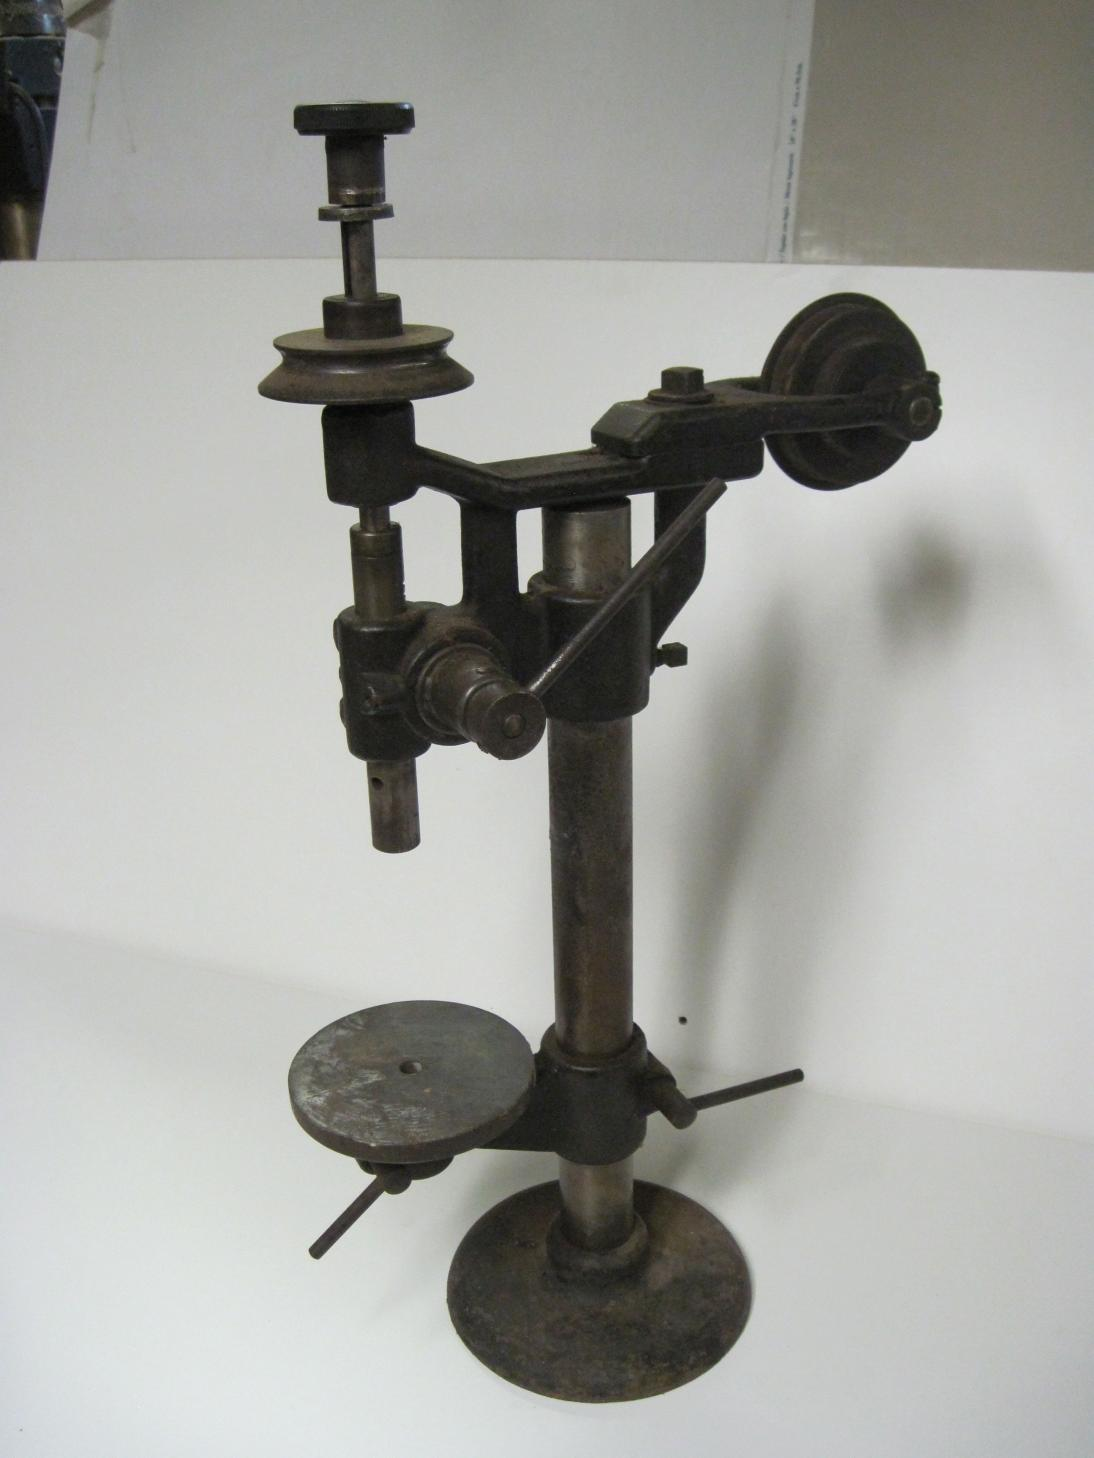 Old Bench Drill Press - Please Identify